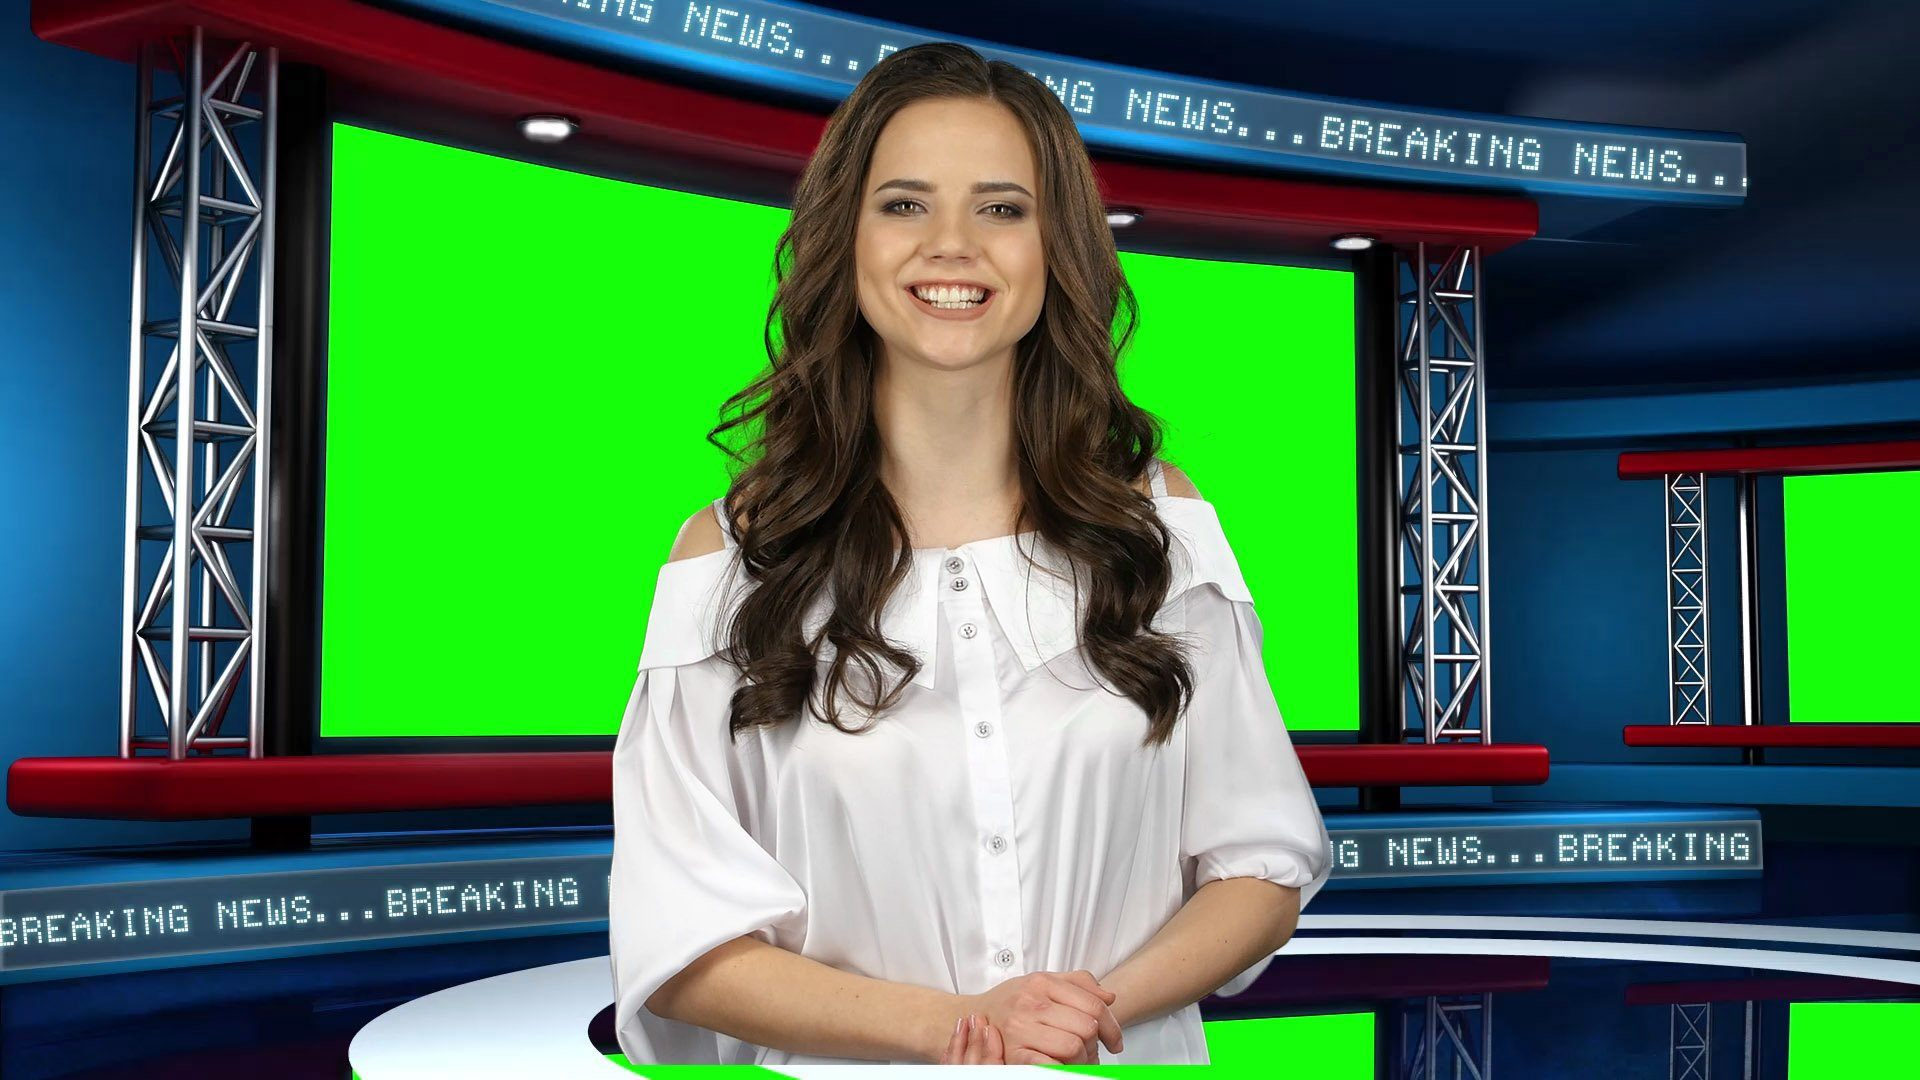 Global News Virtual Studio Set [ANGLE 2]